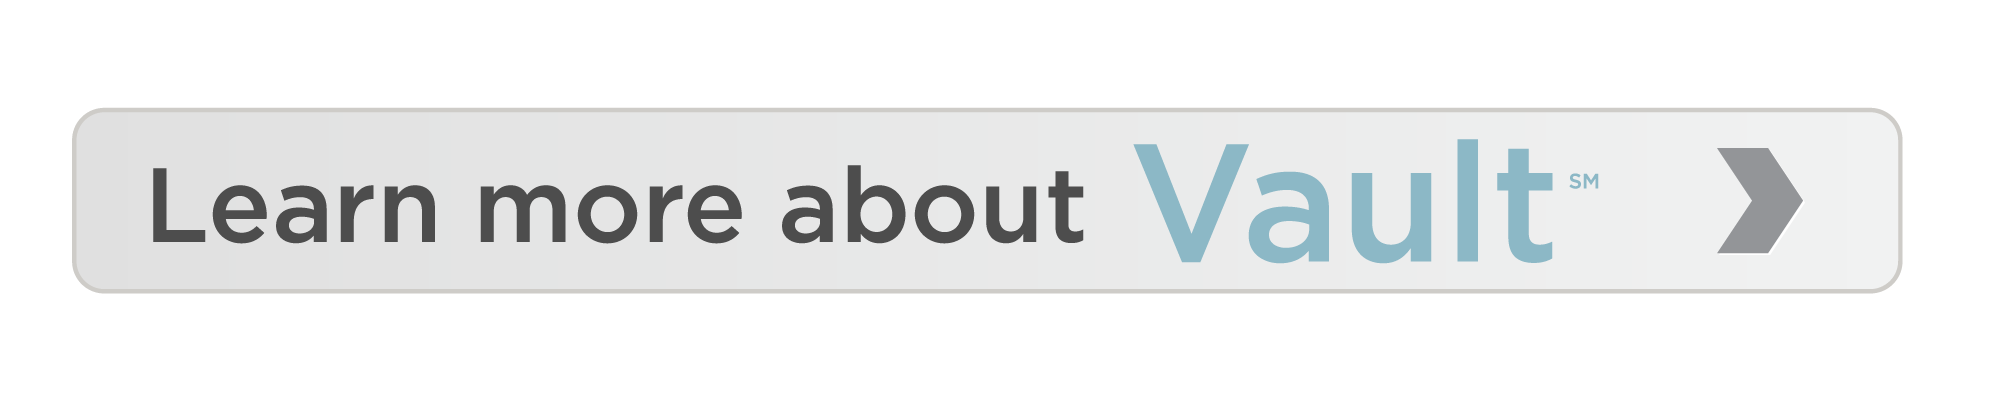 learn about vault